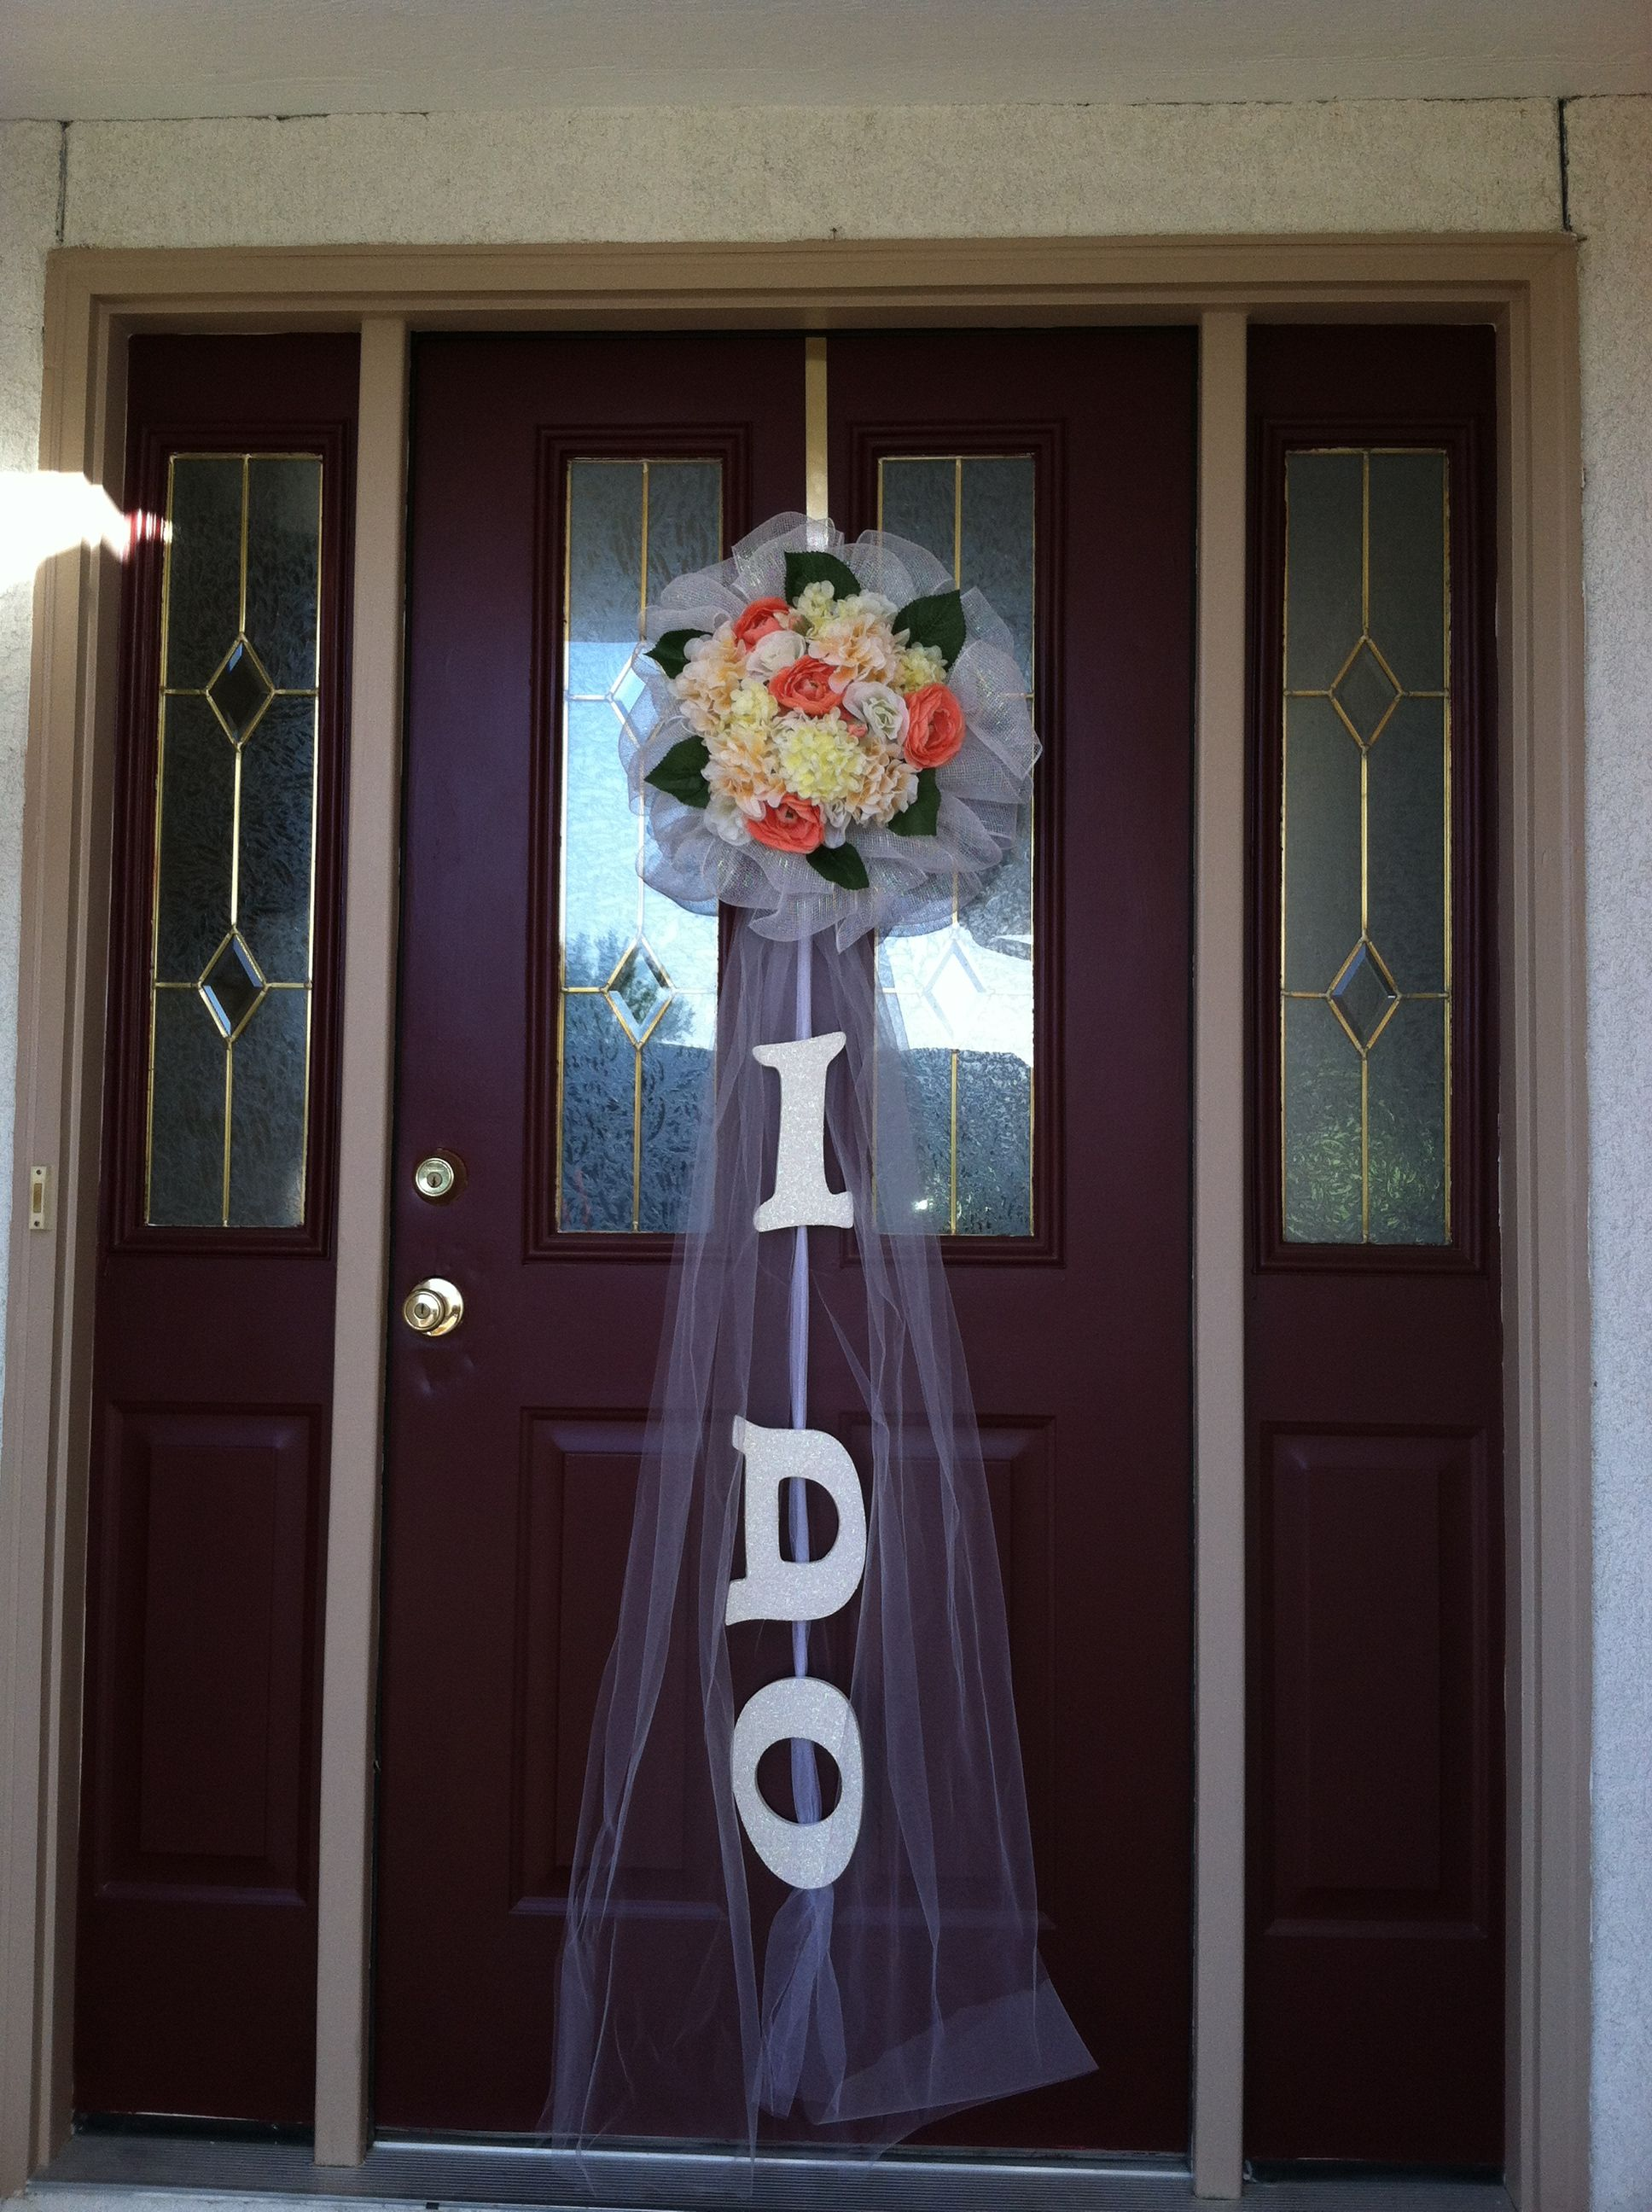 Door decoration for bridal shower. | Bridal shower ...